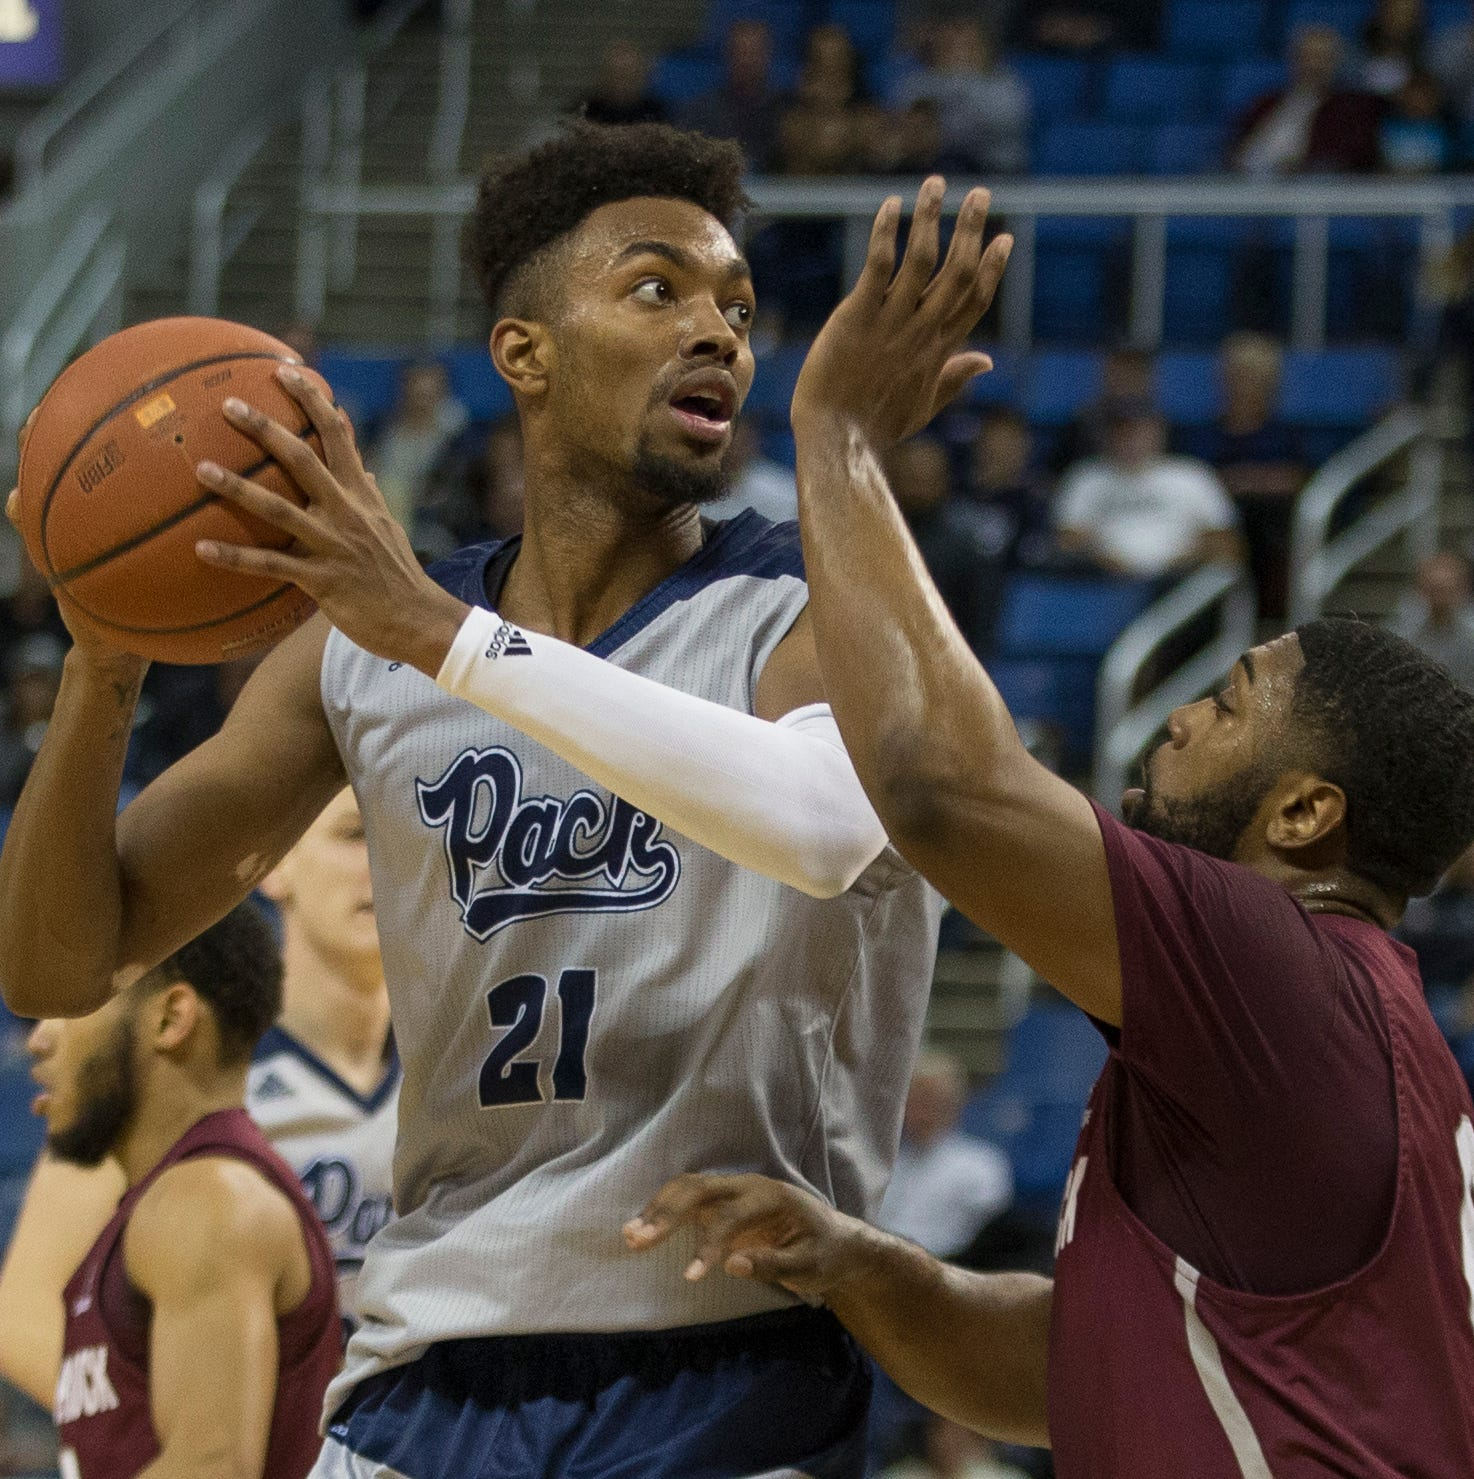 Nevada basketball center Jordan Brown joins Jazz Johnson, enters NCAA transfer portal